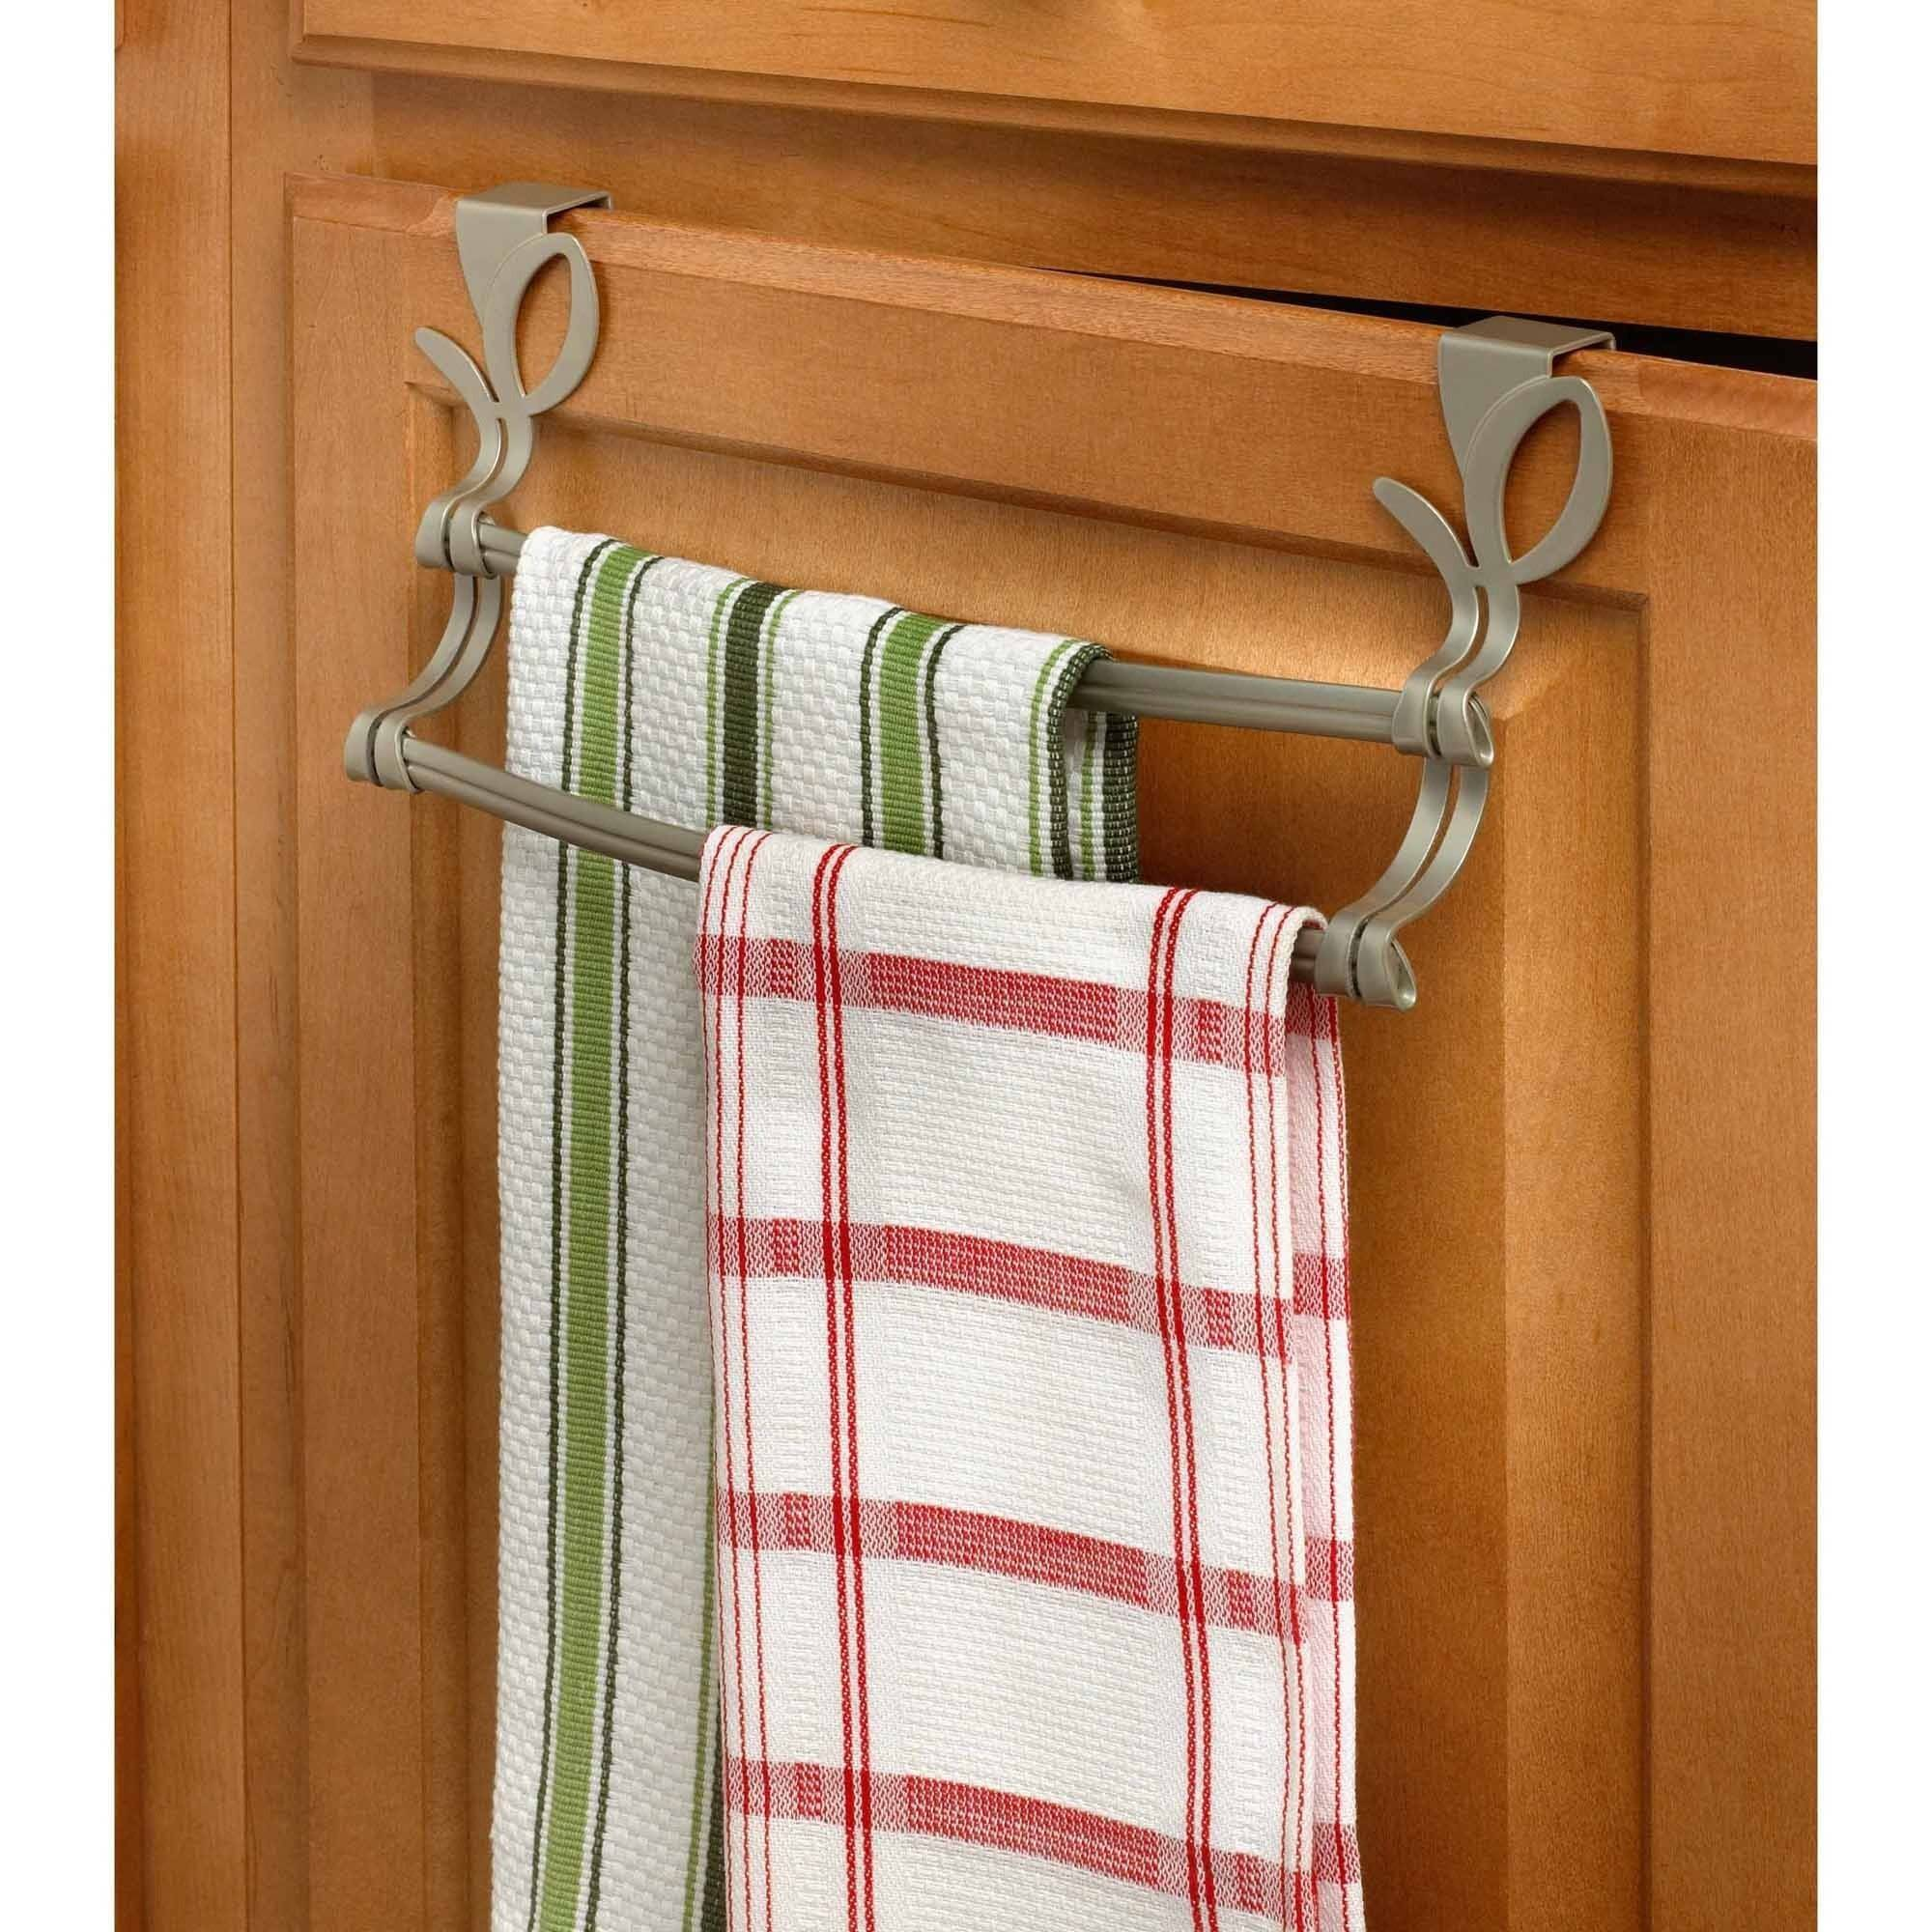 Spectrum Leaf Over the Cabinet Double Towel Bar, Satin Nickel PC